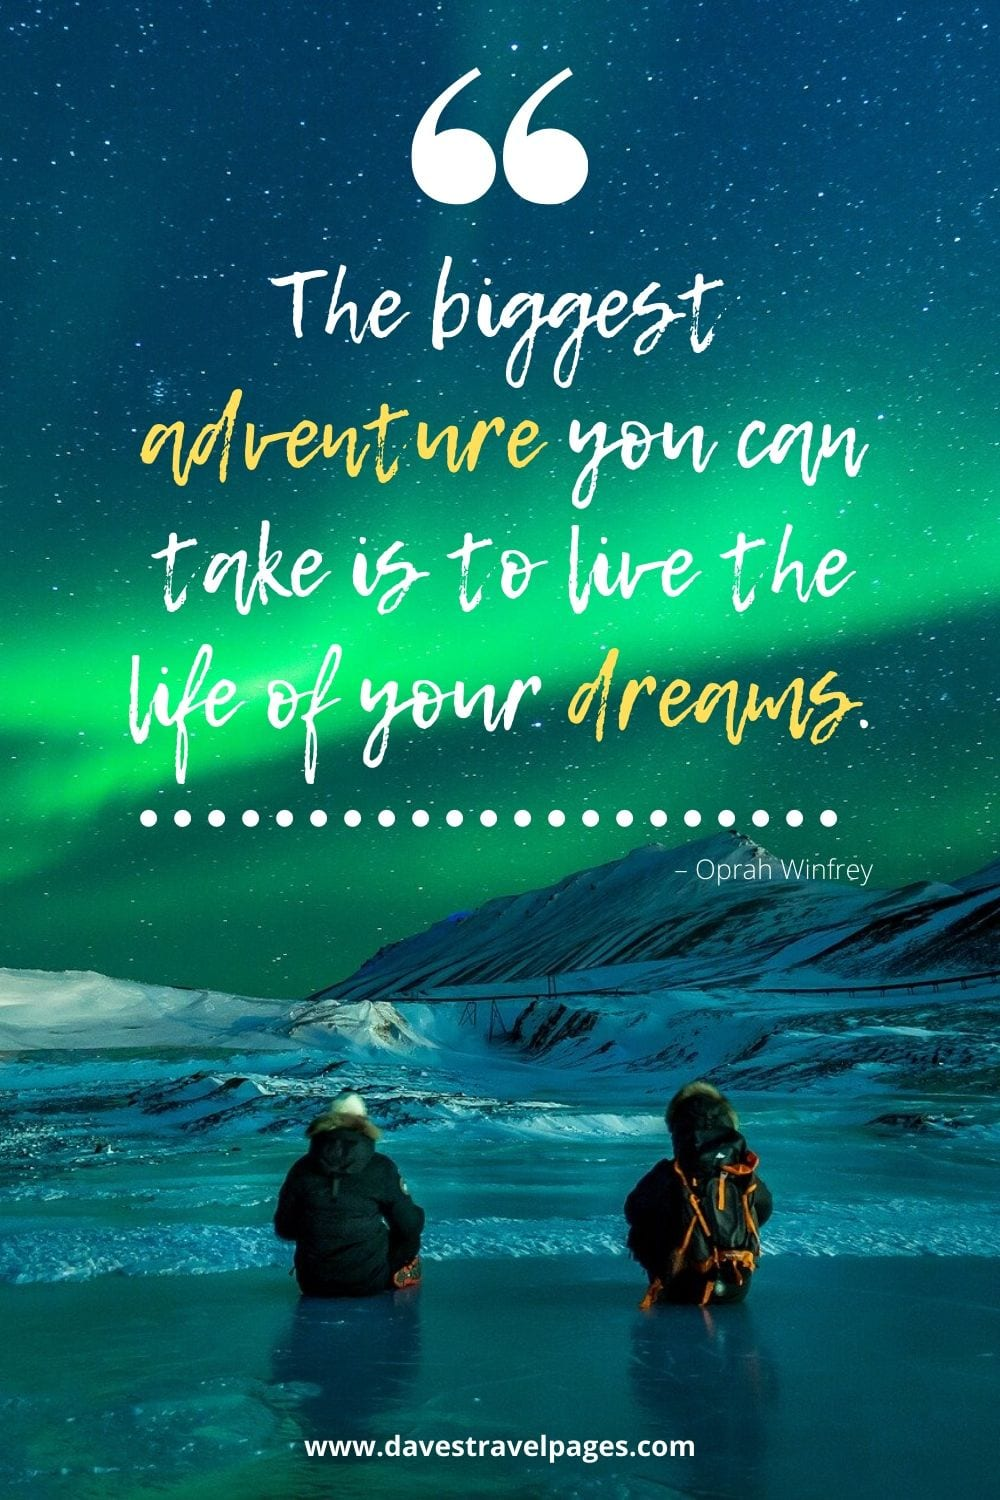 """The biggest adventure you can take is to live the life of your dreams."" – Oprah Winfrey"